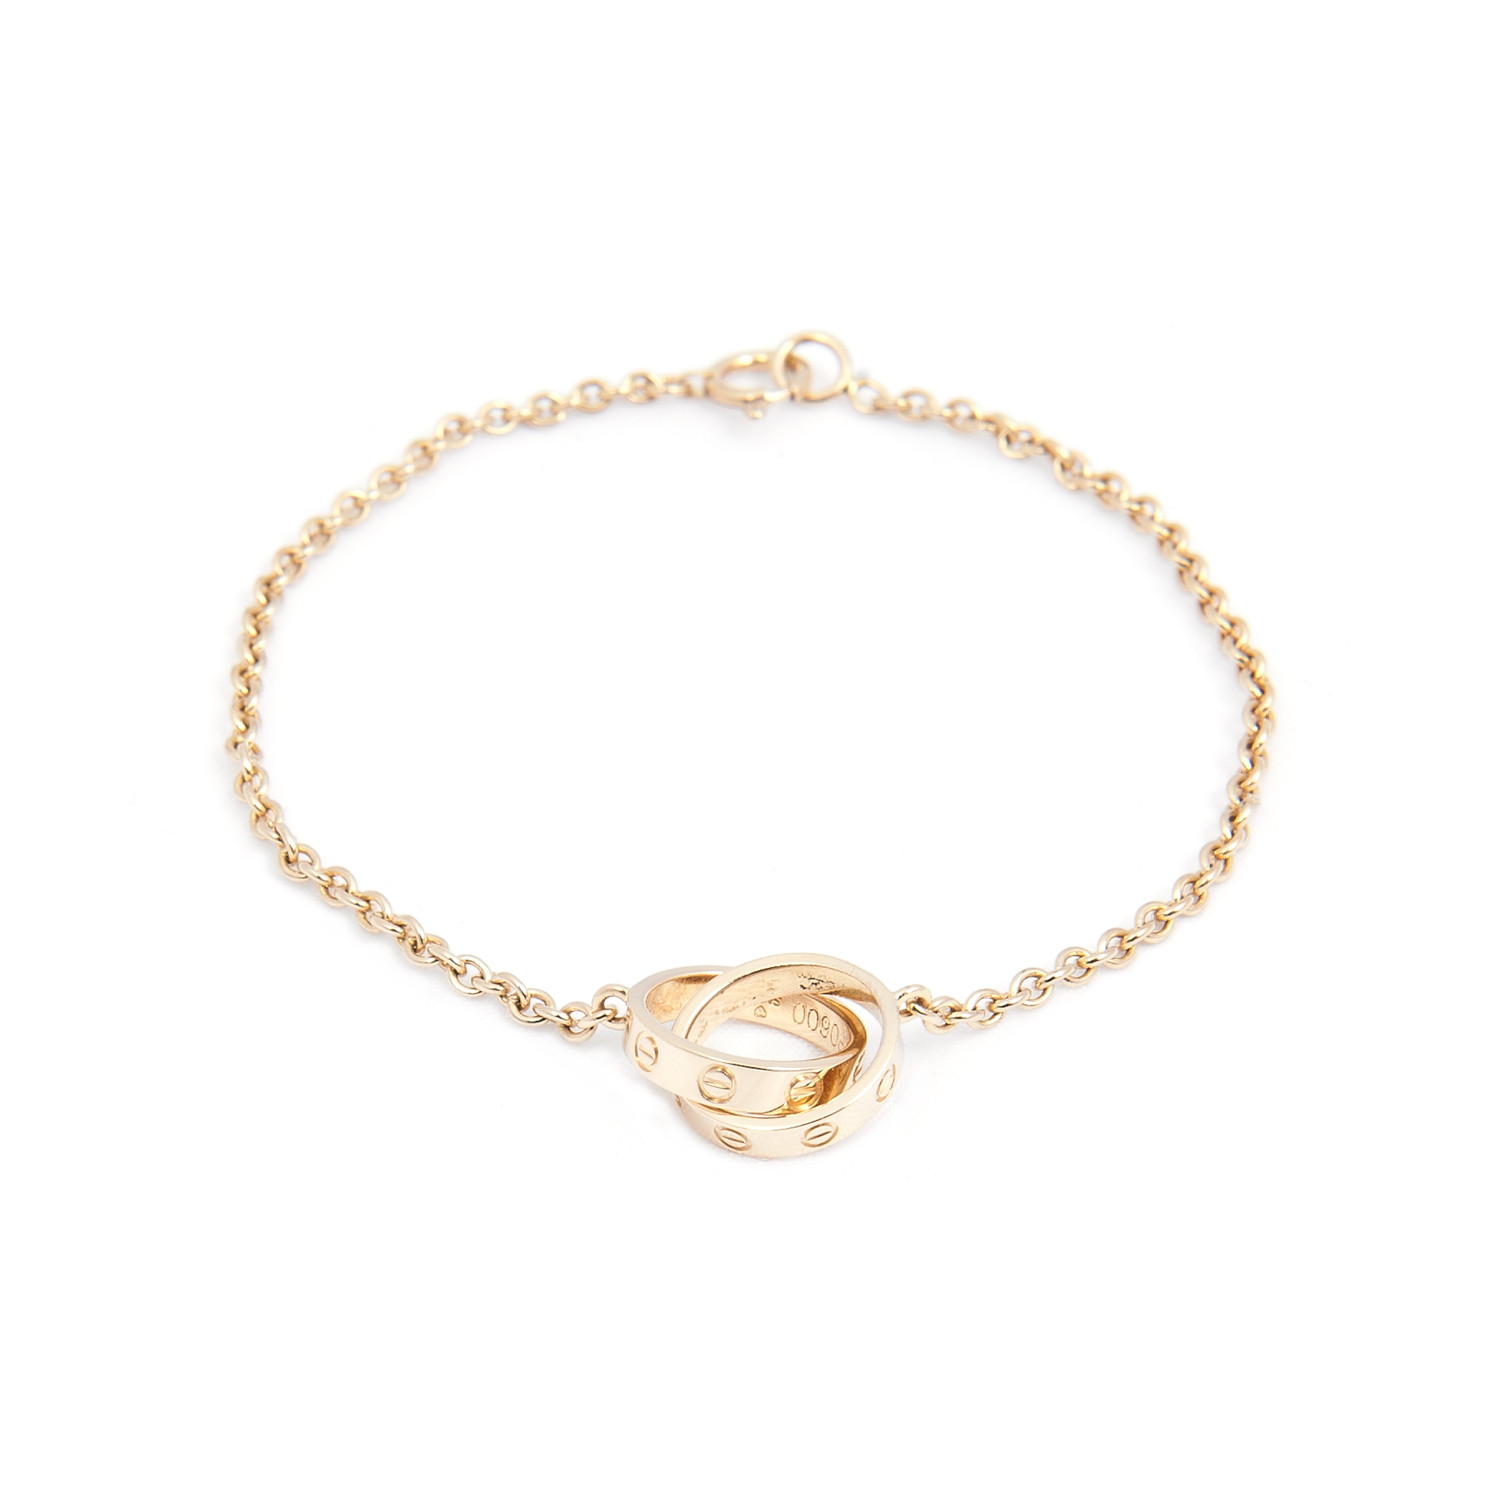 8c589a8d0 507a30aead0ba4ab95074019302adadd medium. Cartier 18K Rose Gold Chain Link  Baby Love Bracelet